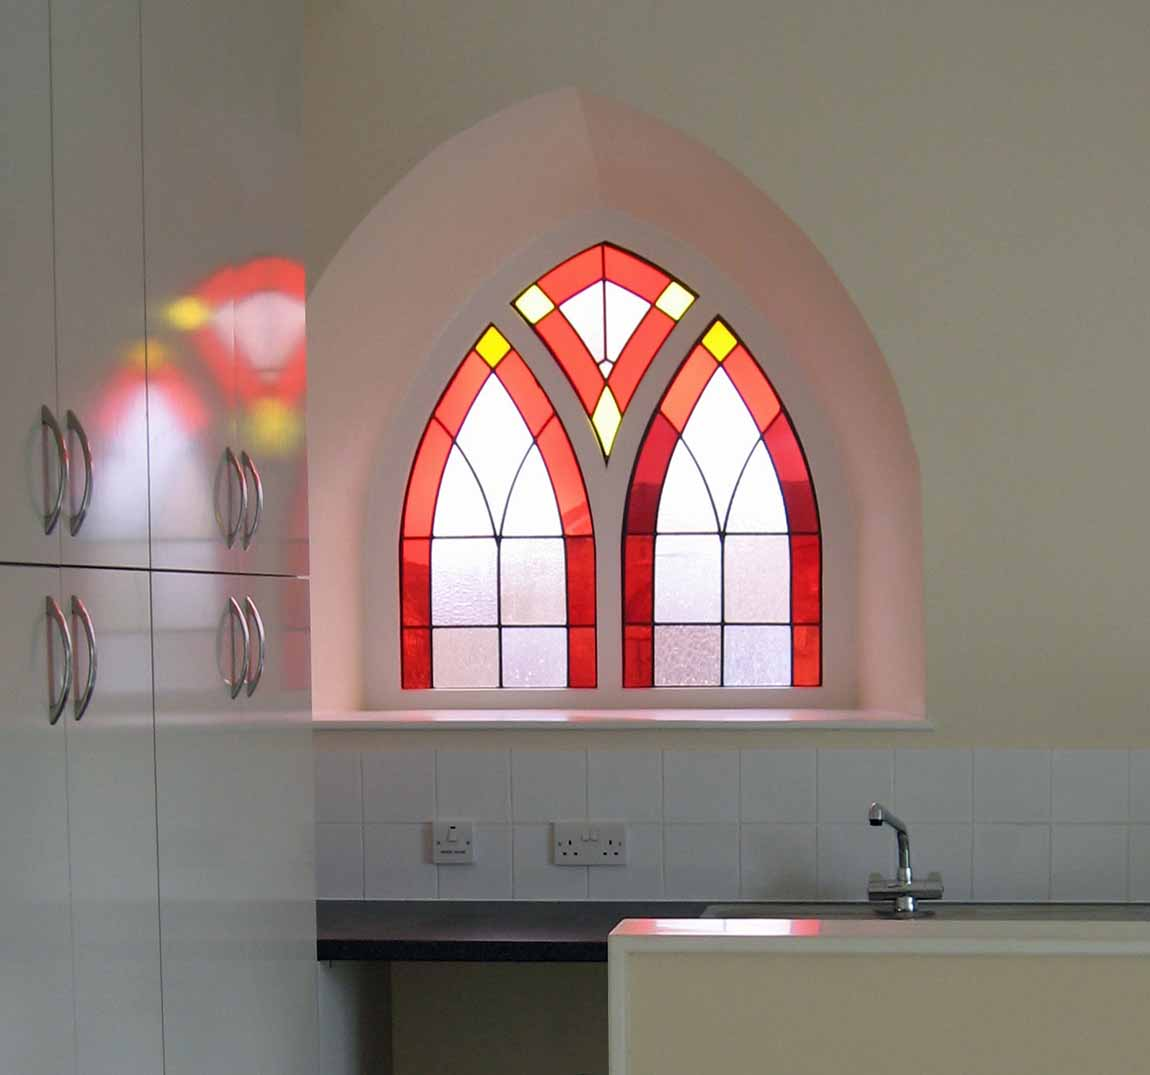 New Life for Old Buildings, Redman + Sutherland Architects Sinclair Thomson Housel,Lerwick, Shetland, interior kitchen